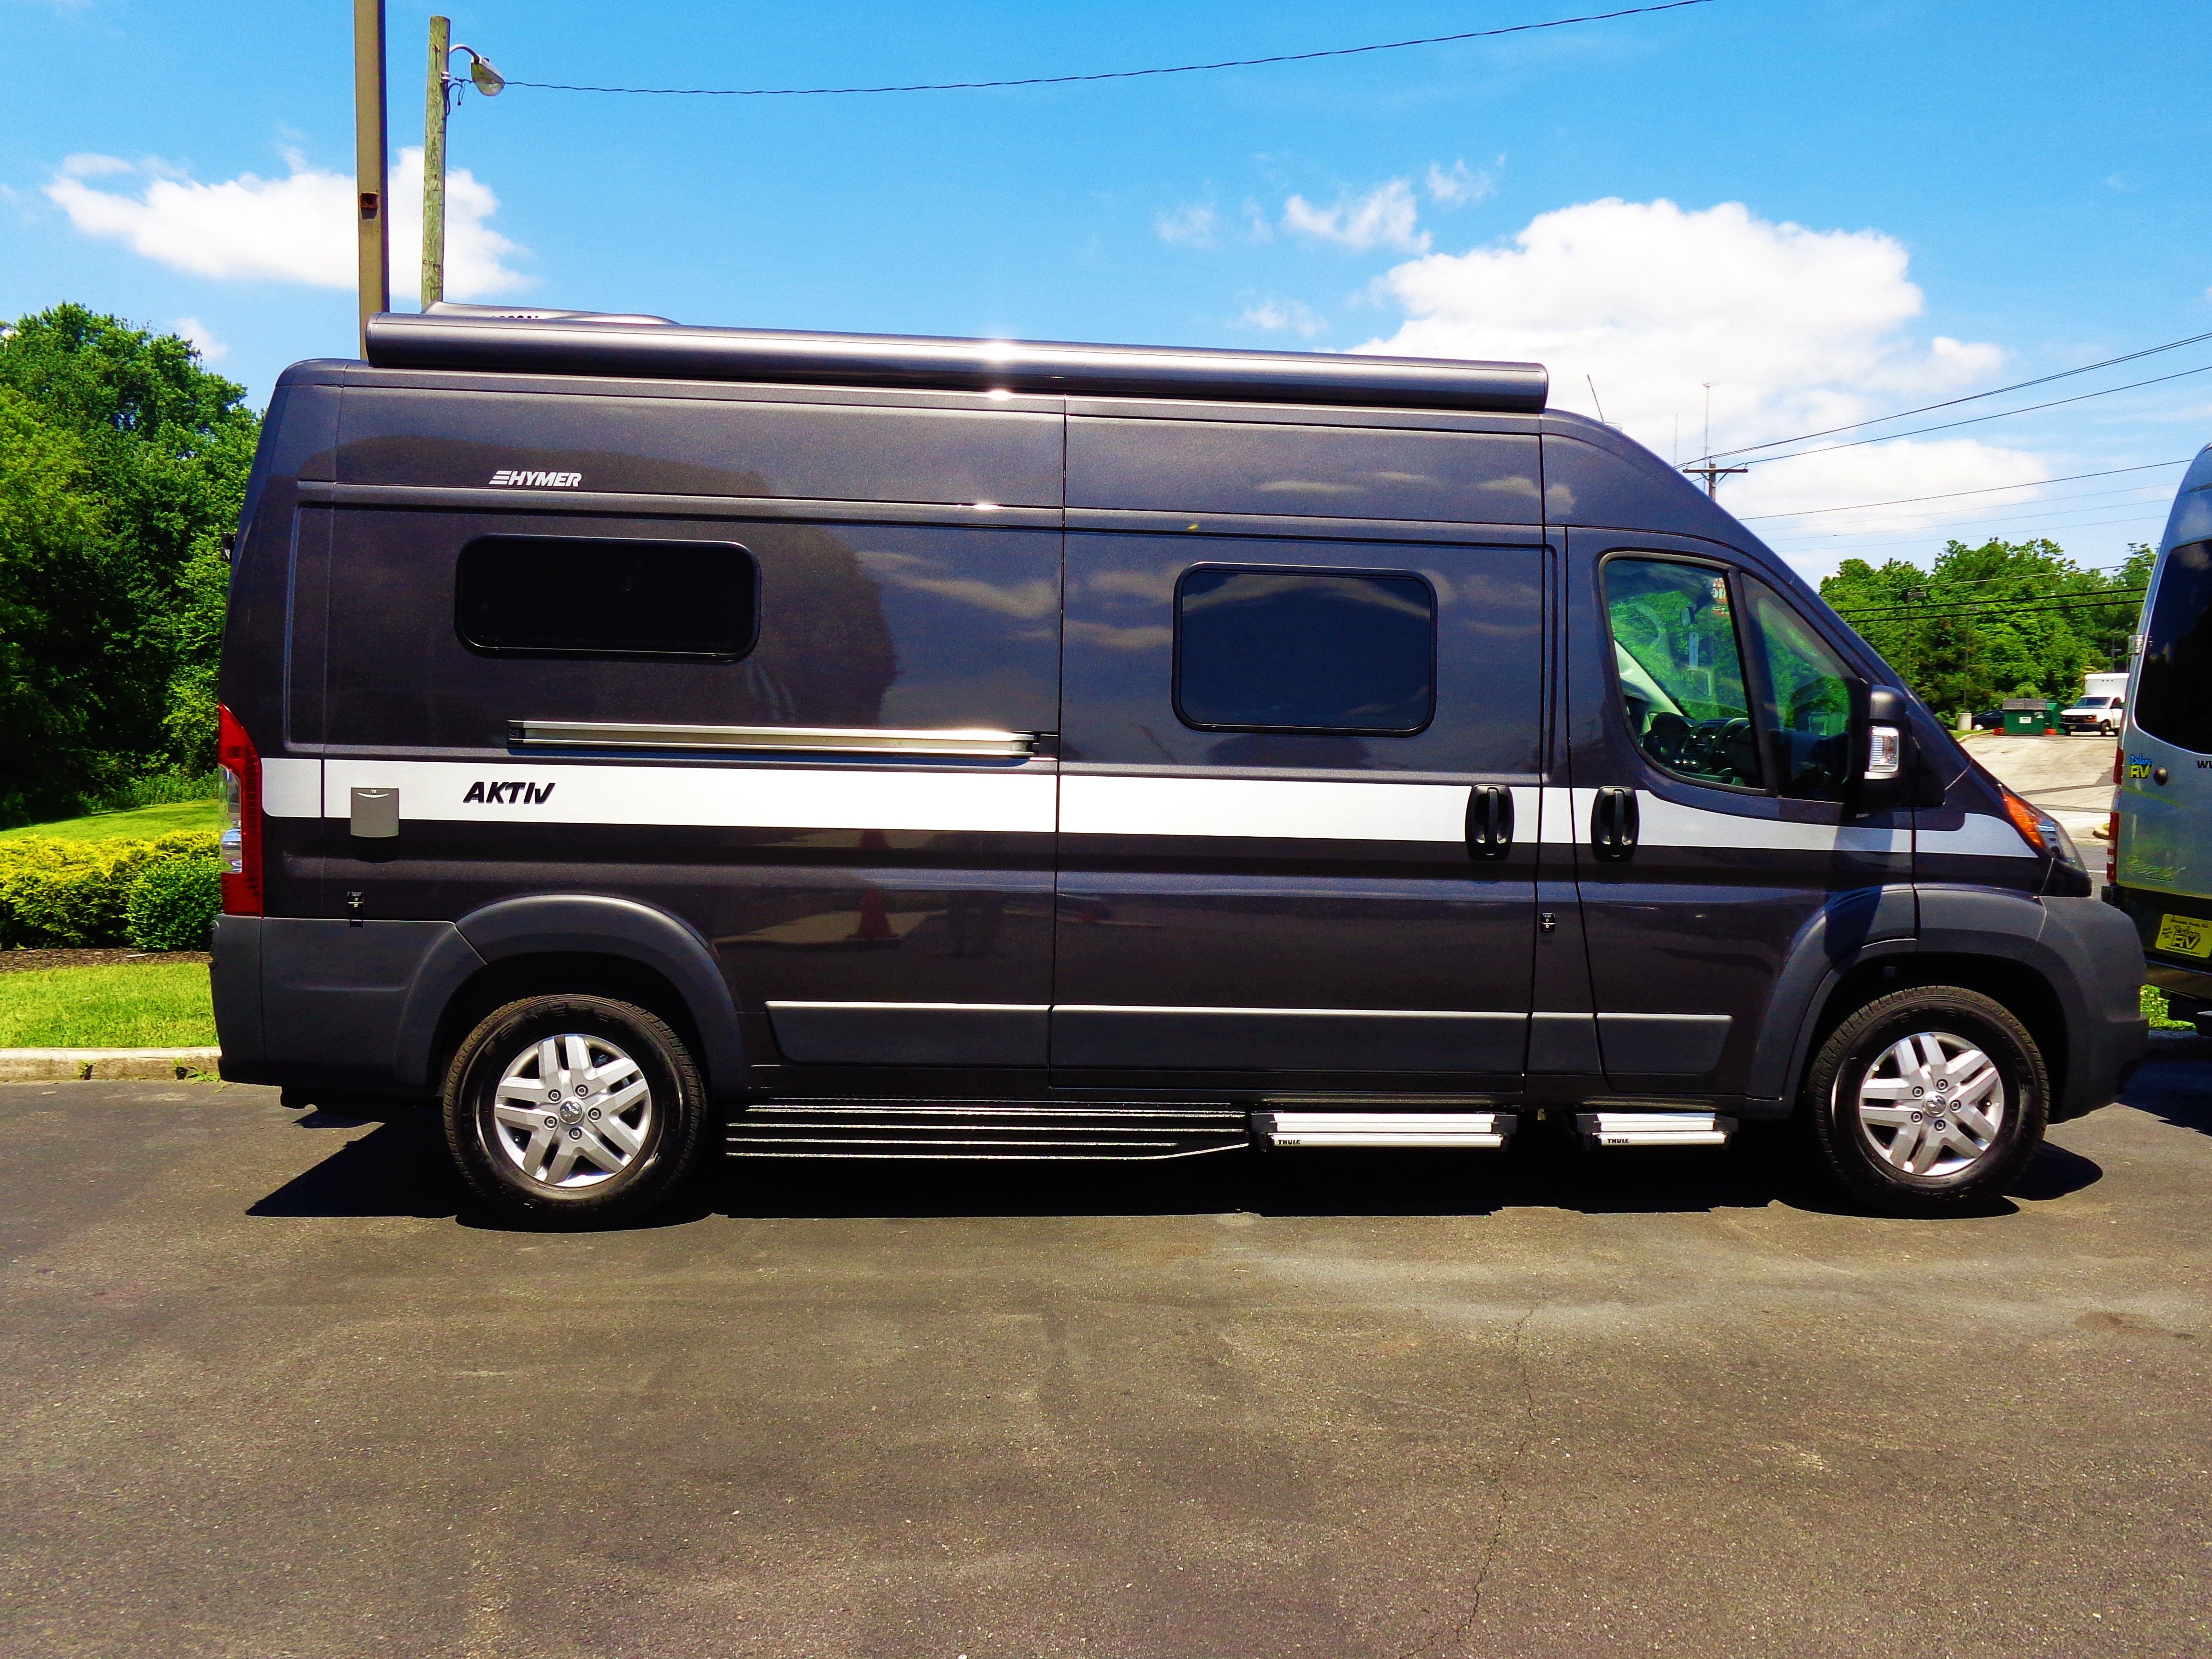 Dylan's RV Center   Used rvs for sale, Rvs for sale, Used rvs